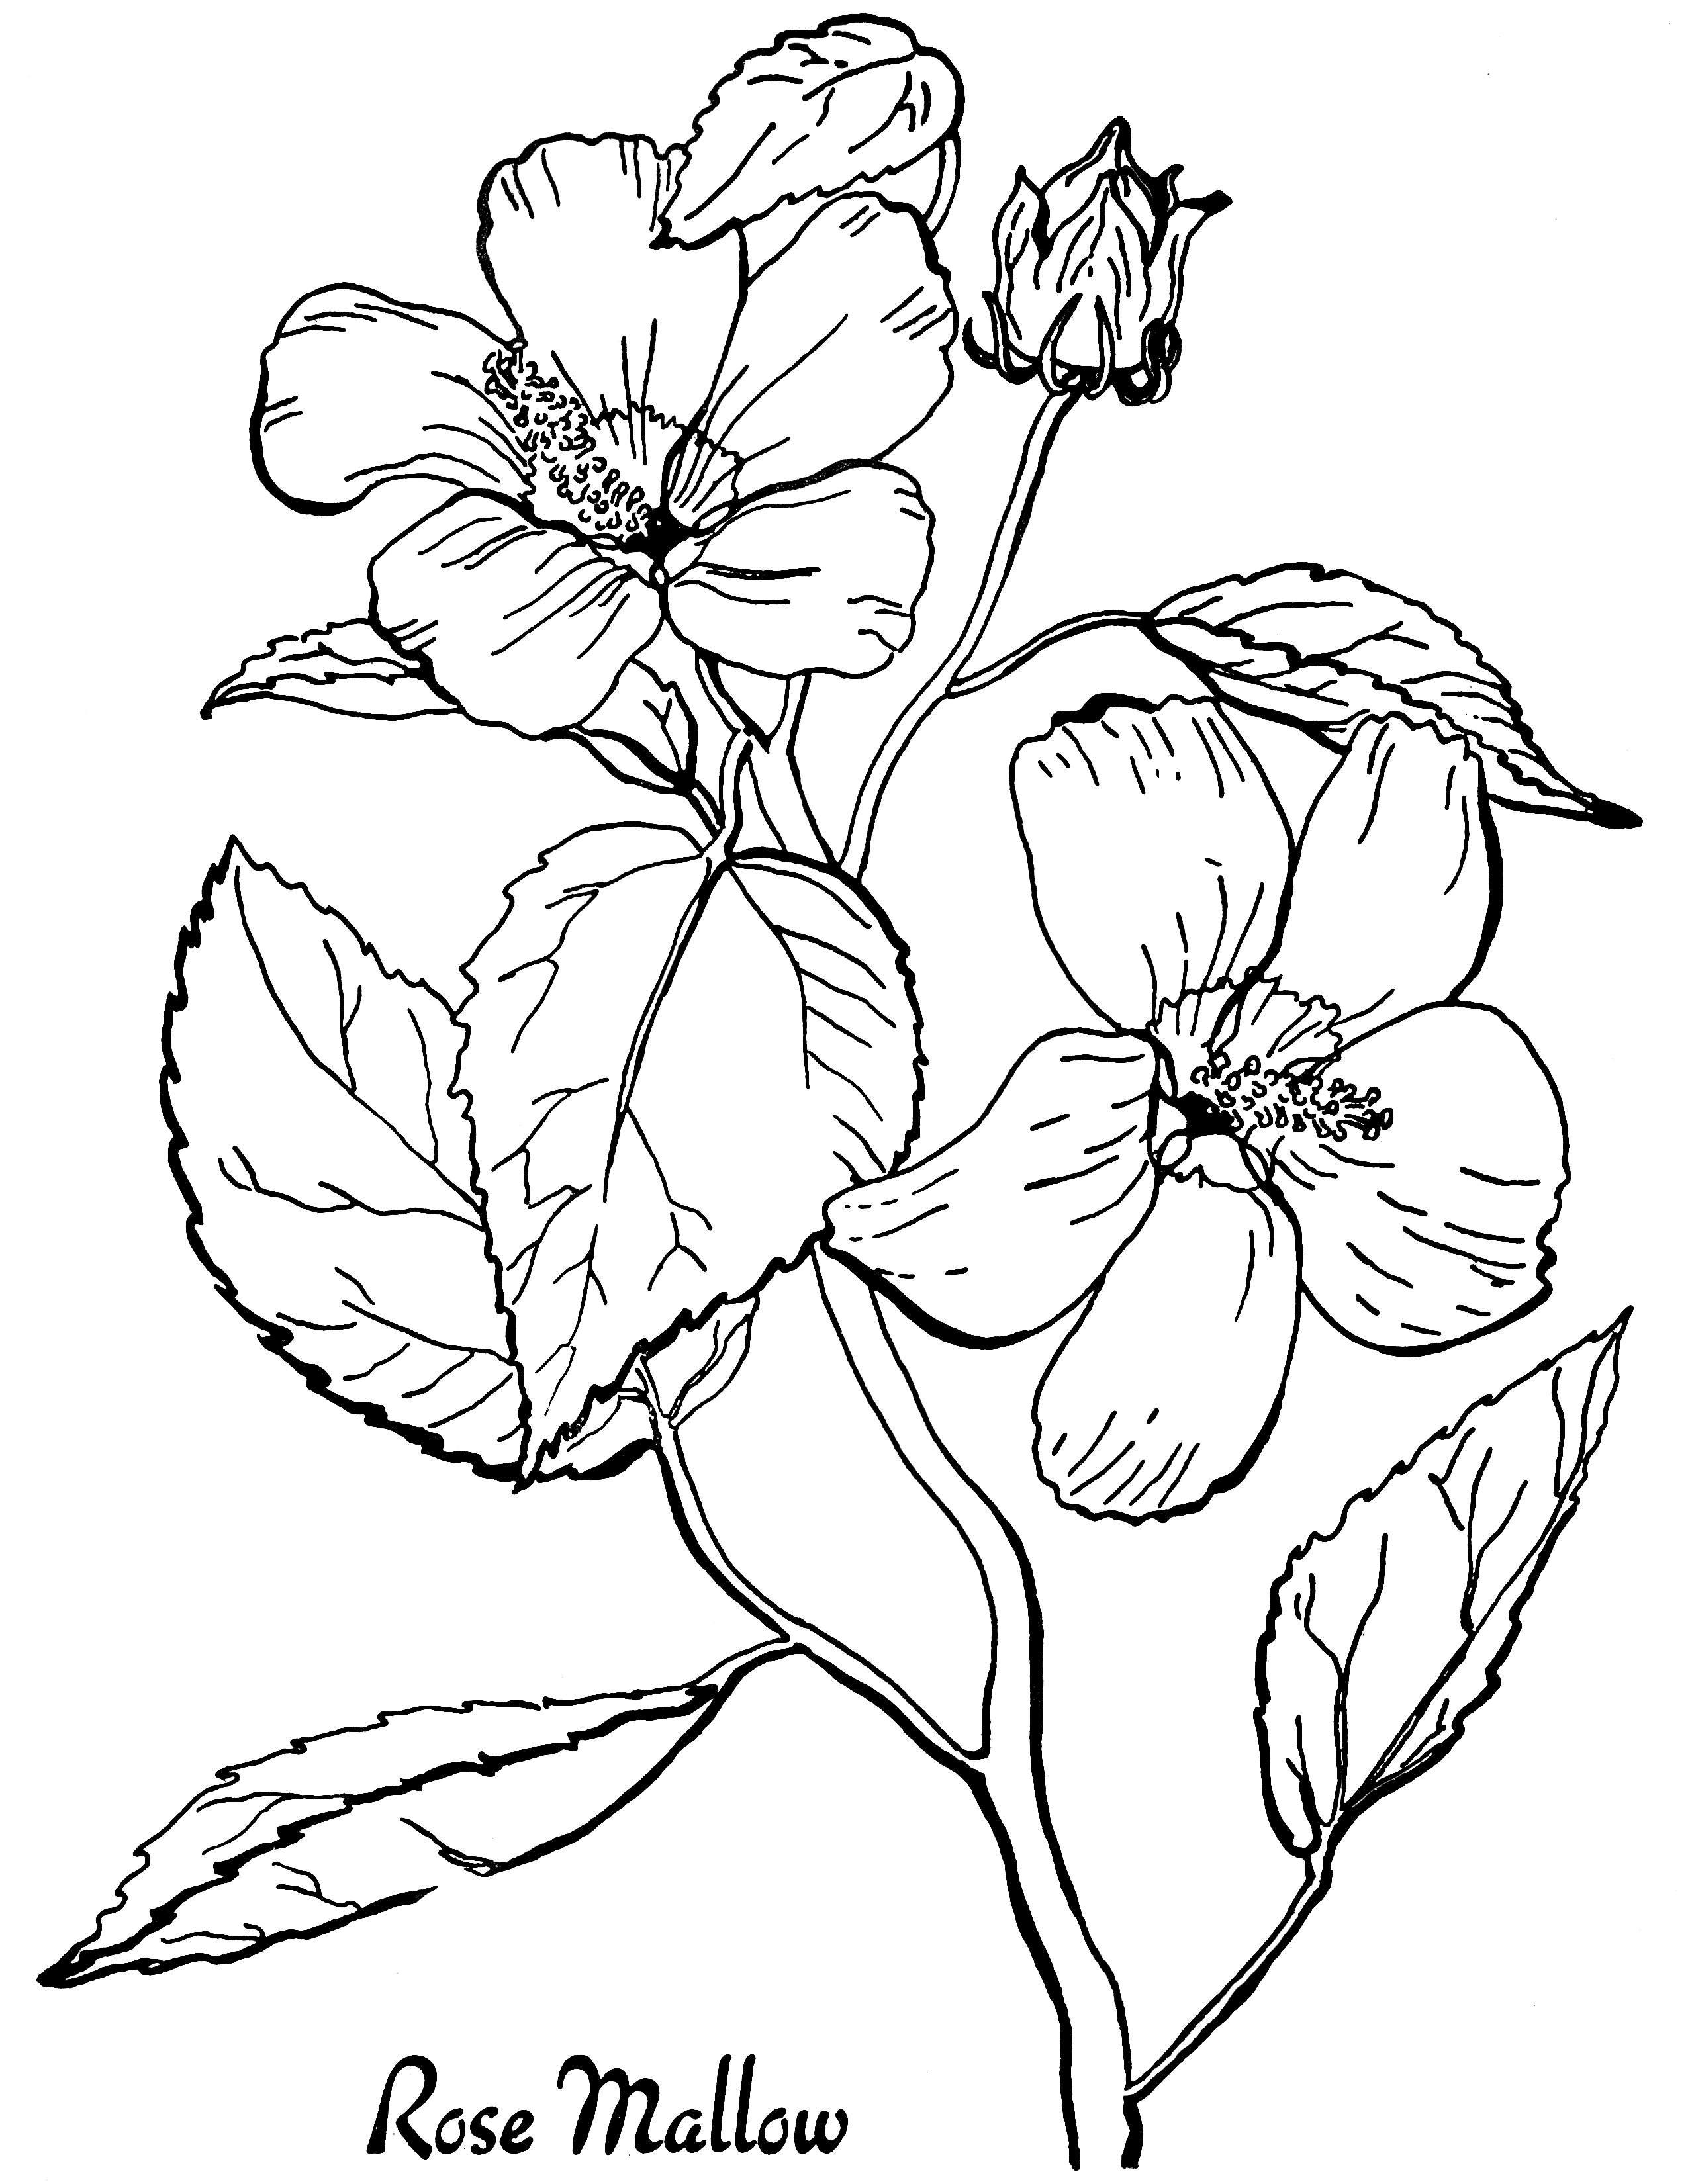 printable coloring pages for adults flowers flower coloring pages for adults best coloring pages for adults coloring printable pages flowers for